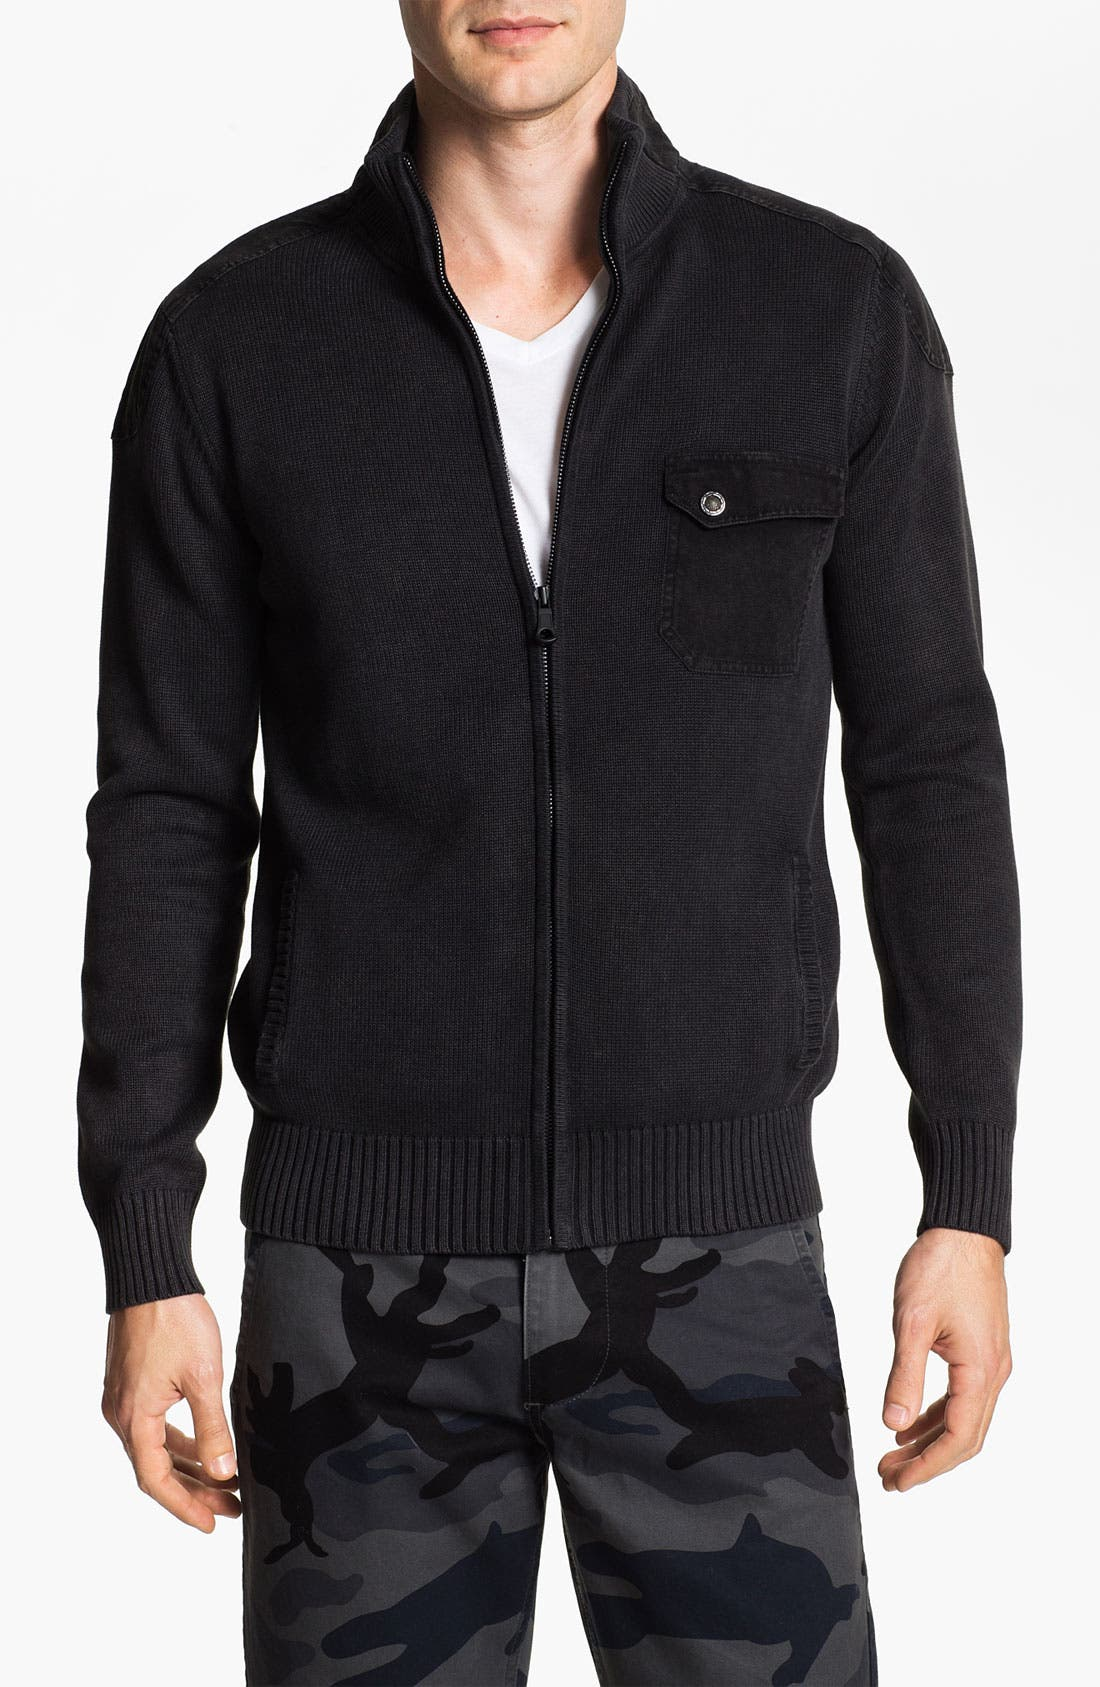 Alternate Image 1 Selected - R44 Rogan Standard Issue 'Triumph' Organic Cotton Zip Cardigan